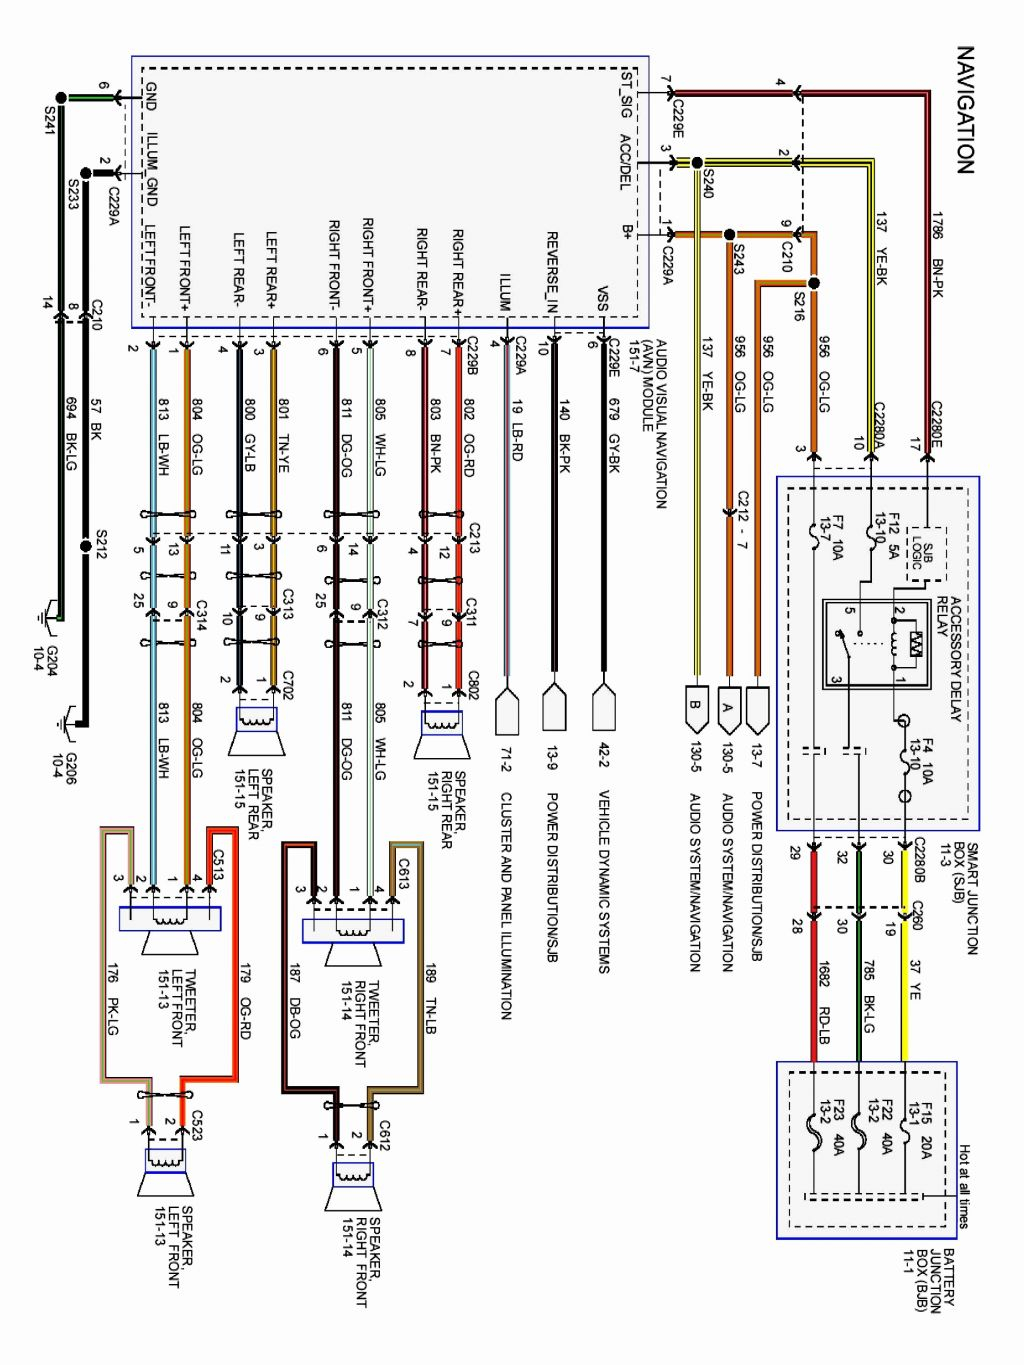 ford explorer 2006 radio wiring diagram what is a number line 2011 escape collection